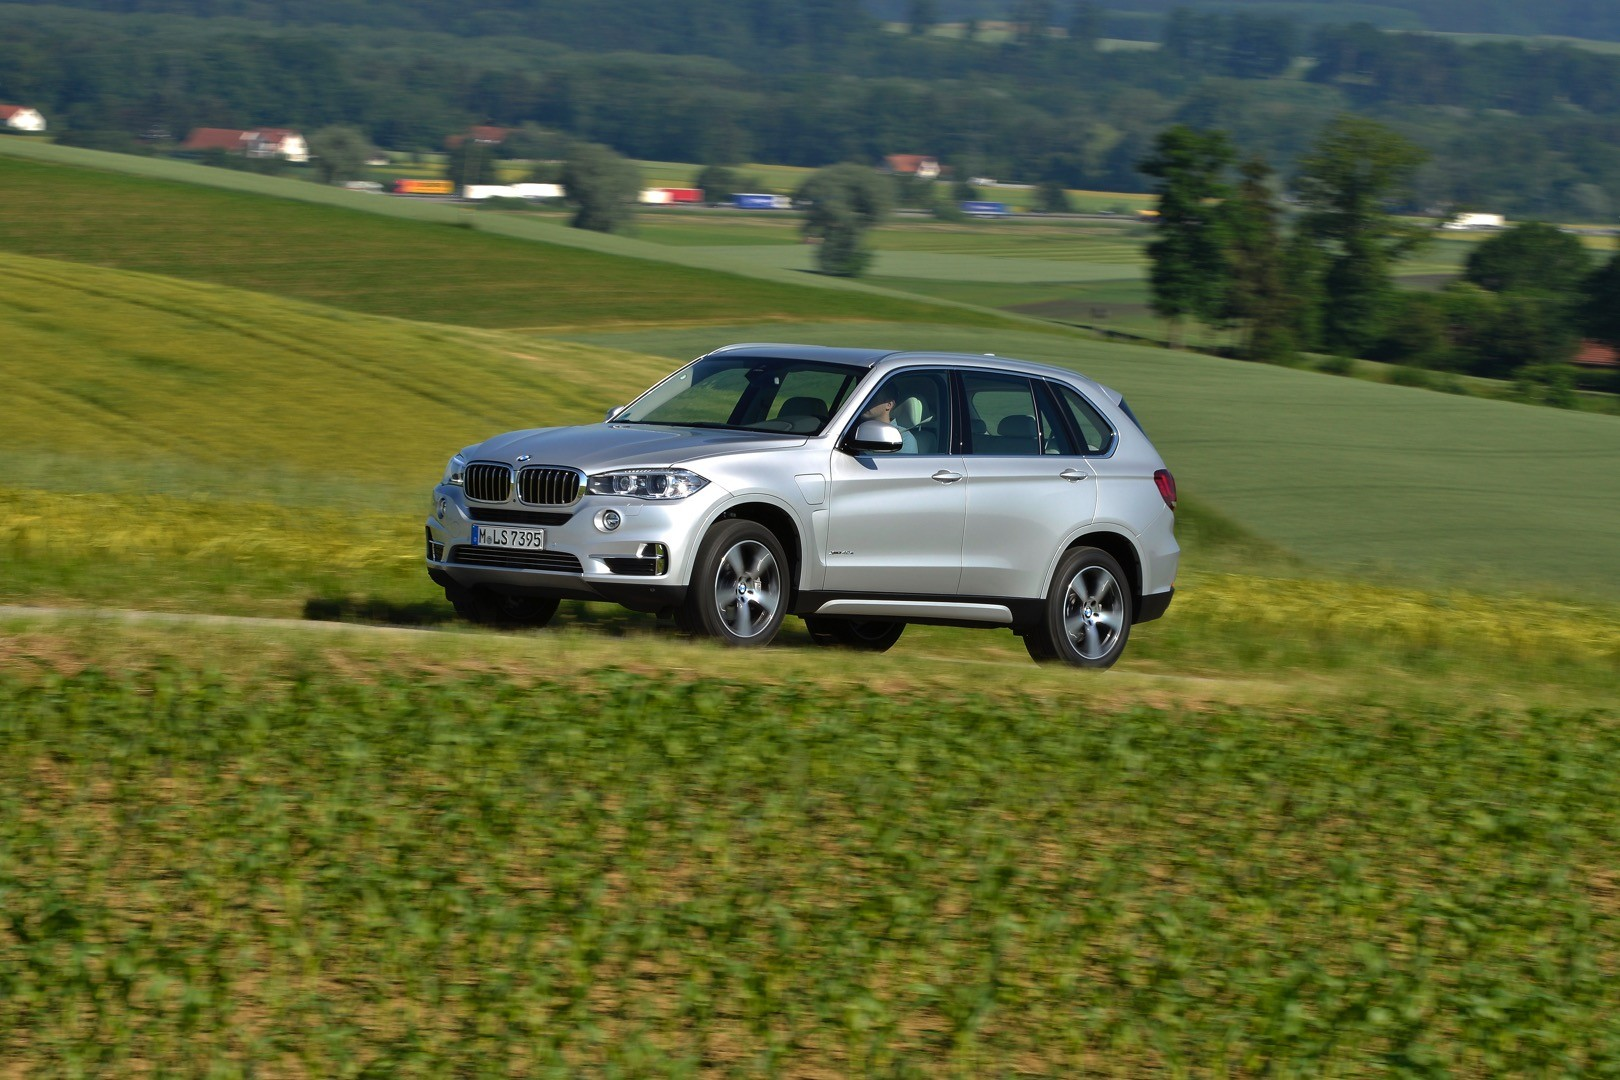 2015 Bmw X5 M To Come Out With A New Color Long Beach Blue Autoevolution